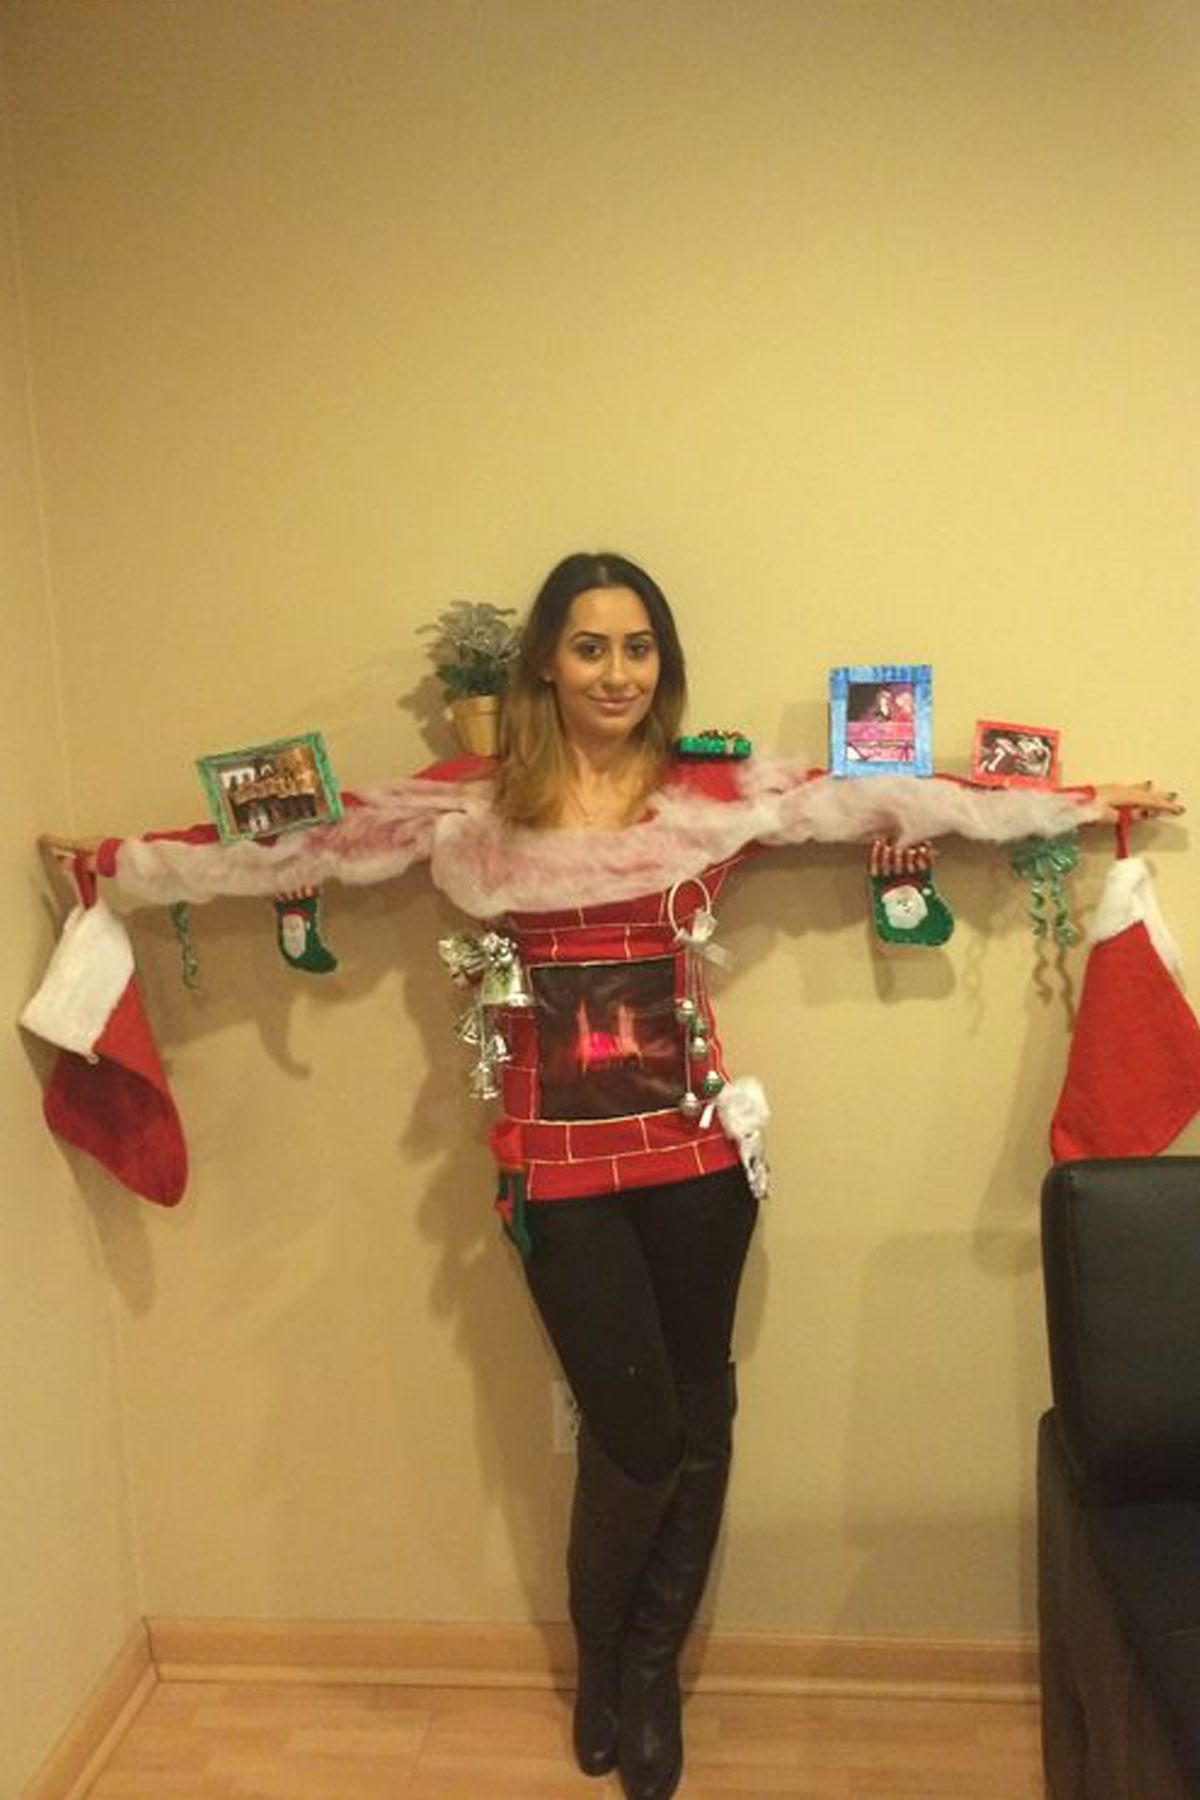 23 ugly christmas sweater ideas to buy and diy tacky christmas 23 ugly christmas sweater ideas to buy and diy tacky christmas sweaters for women solutioingenieria Image collections